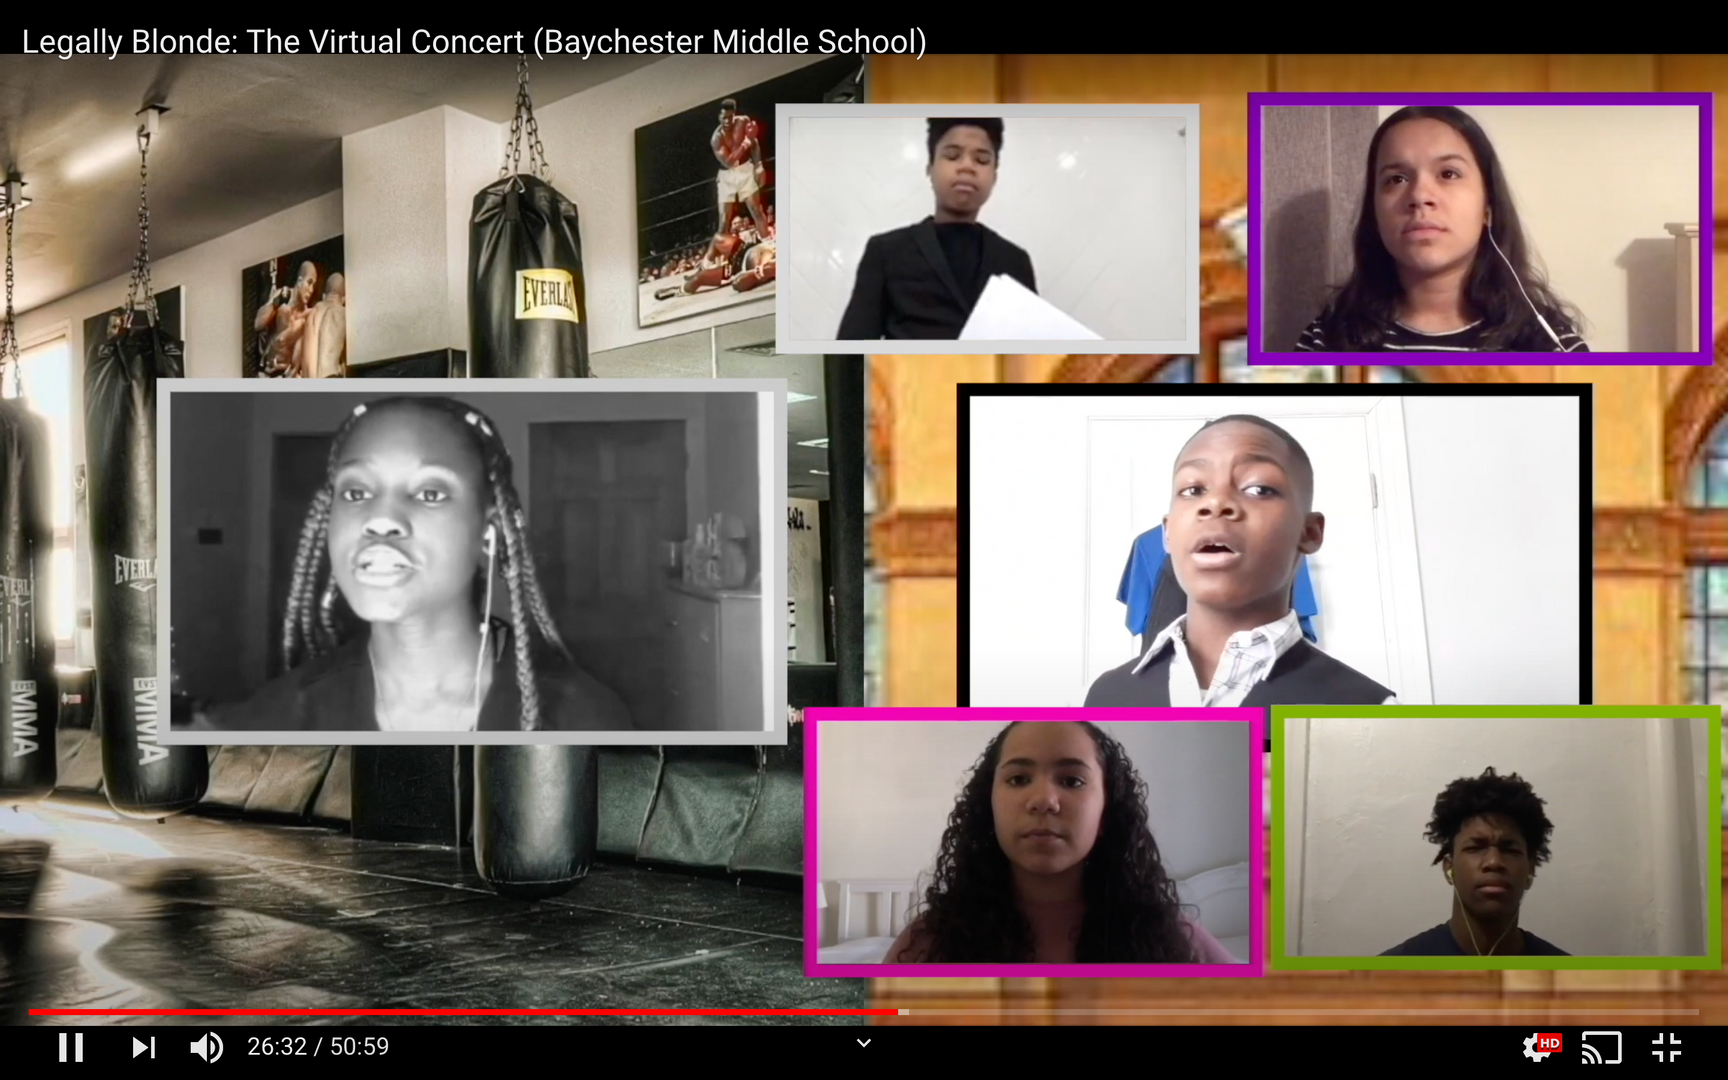 Students singing in virtual screen boxes in front of a split-screen of a nice house and a gym